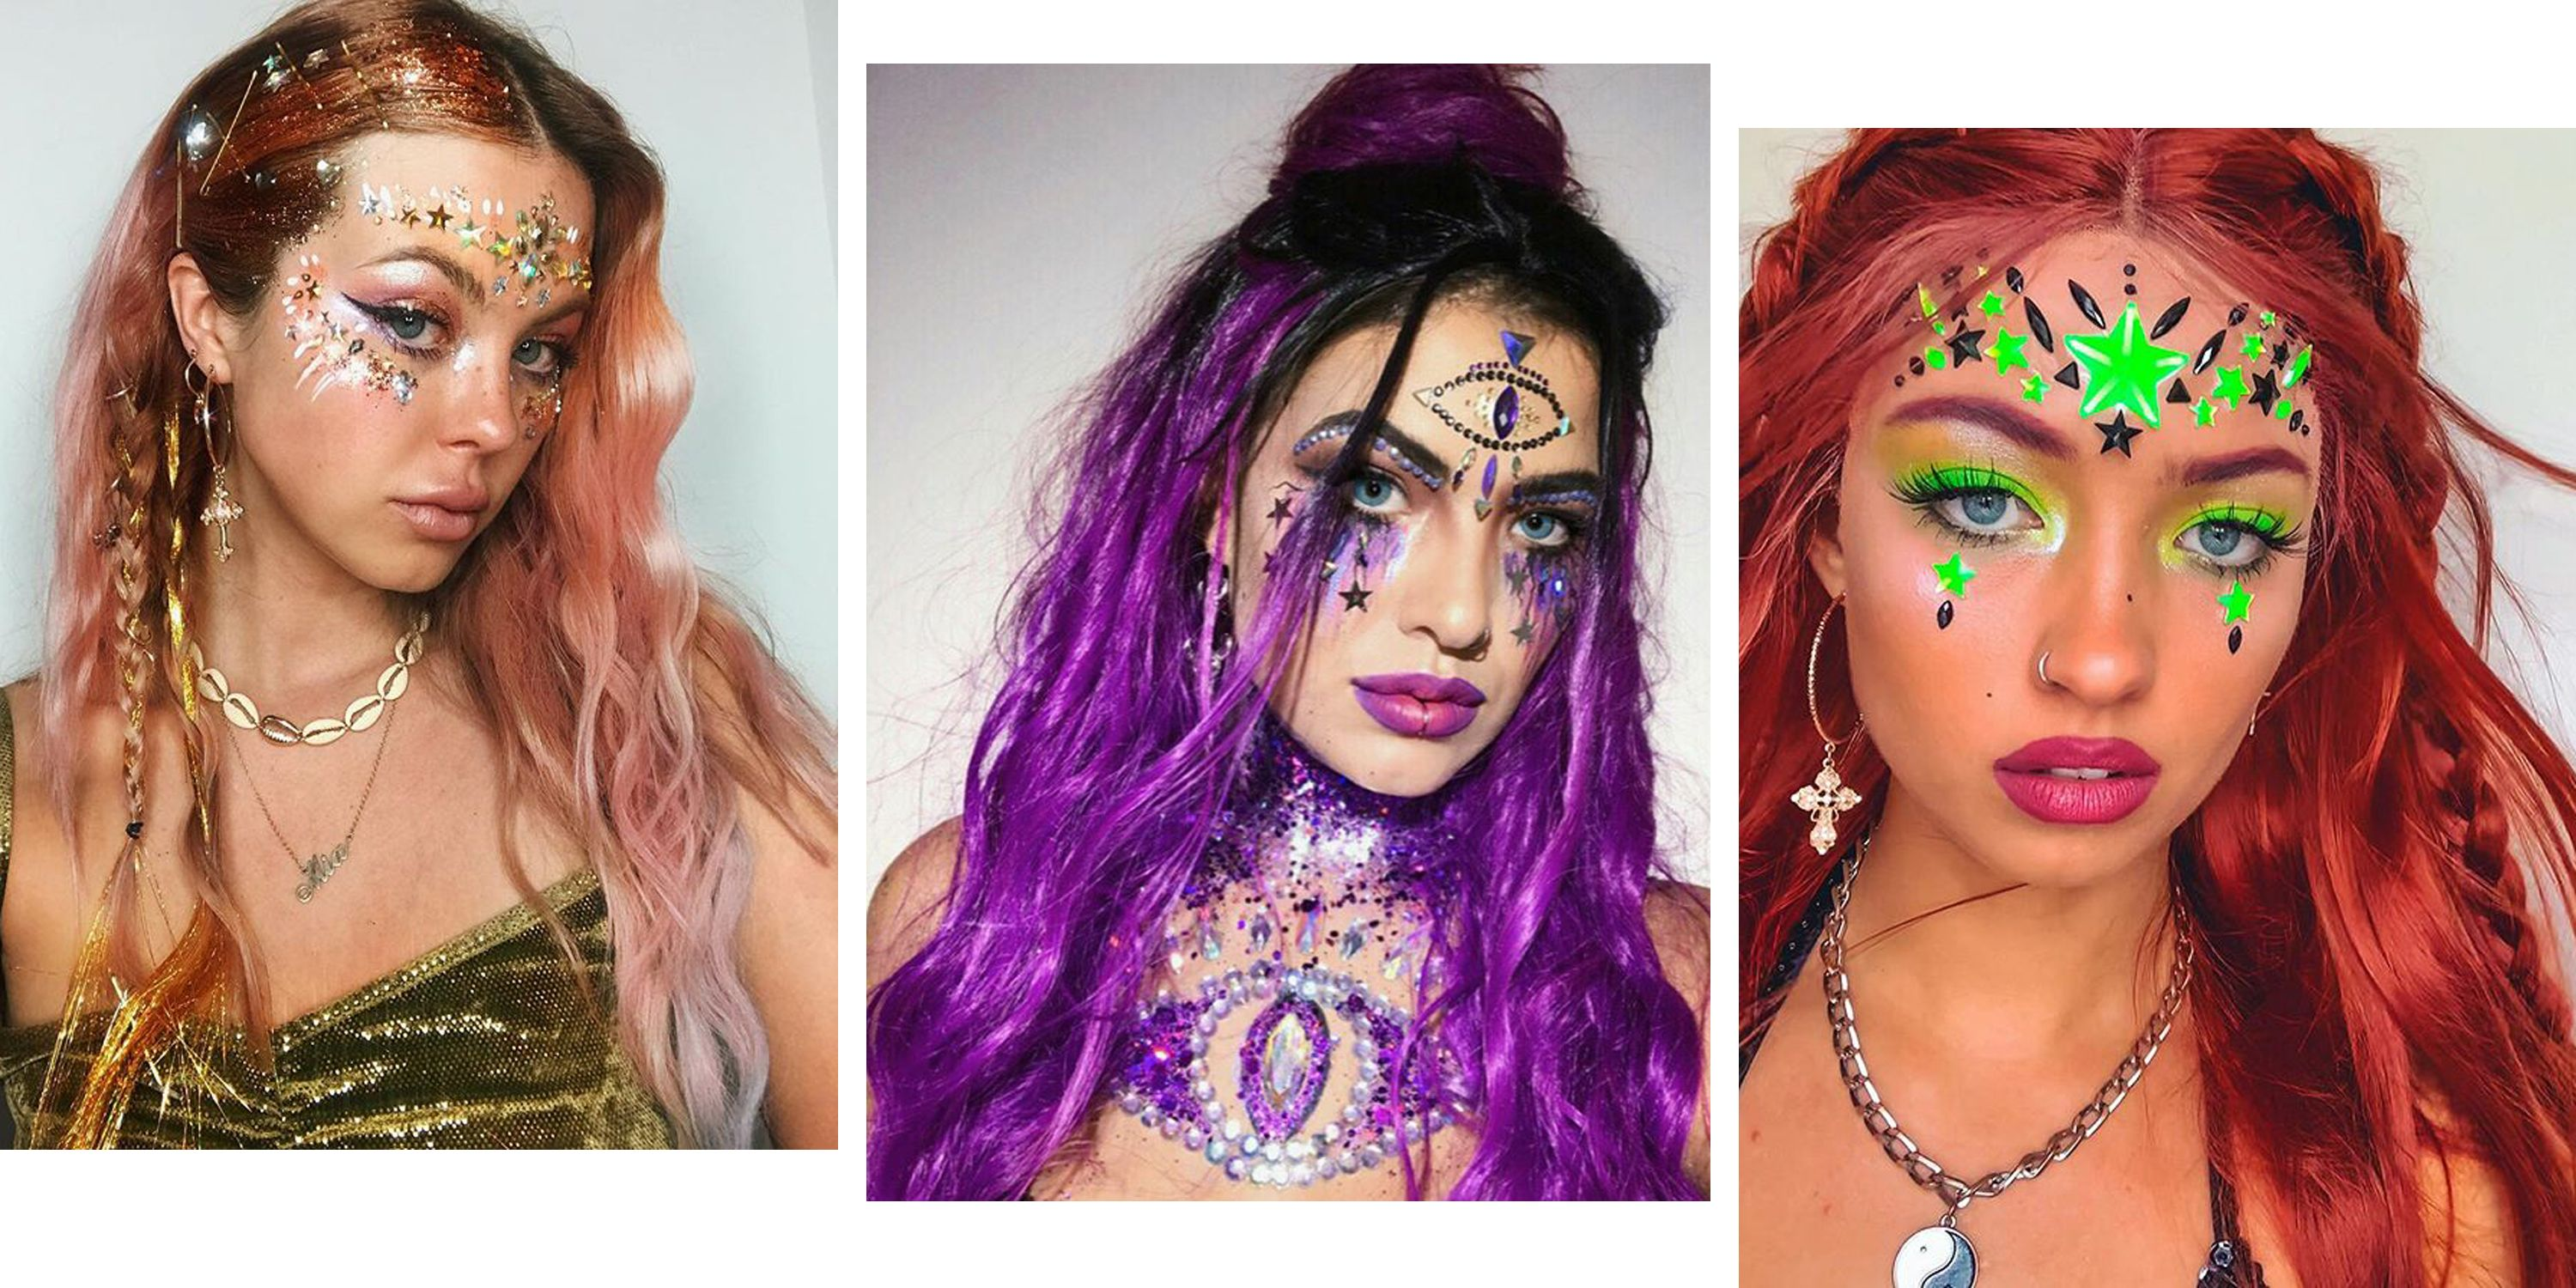 8 insane festival beauty looks you'll want to try this summer